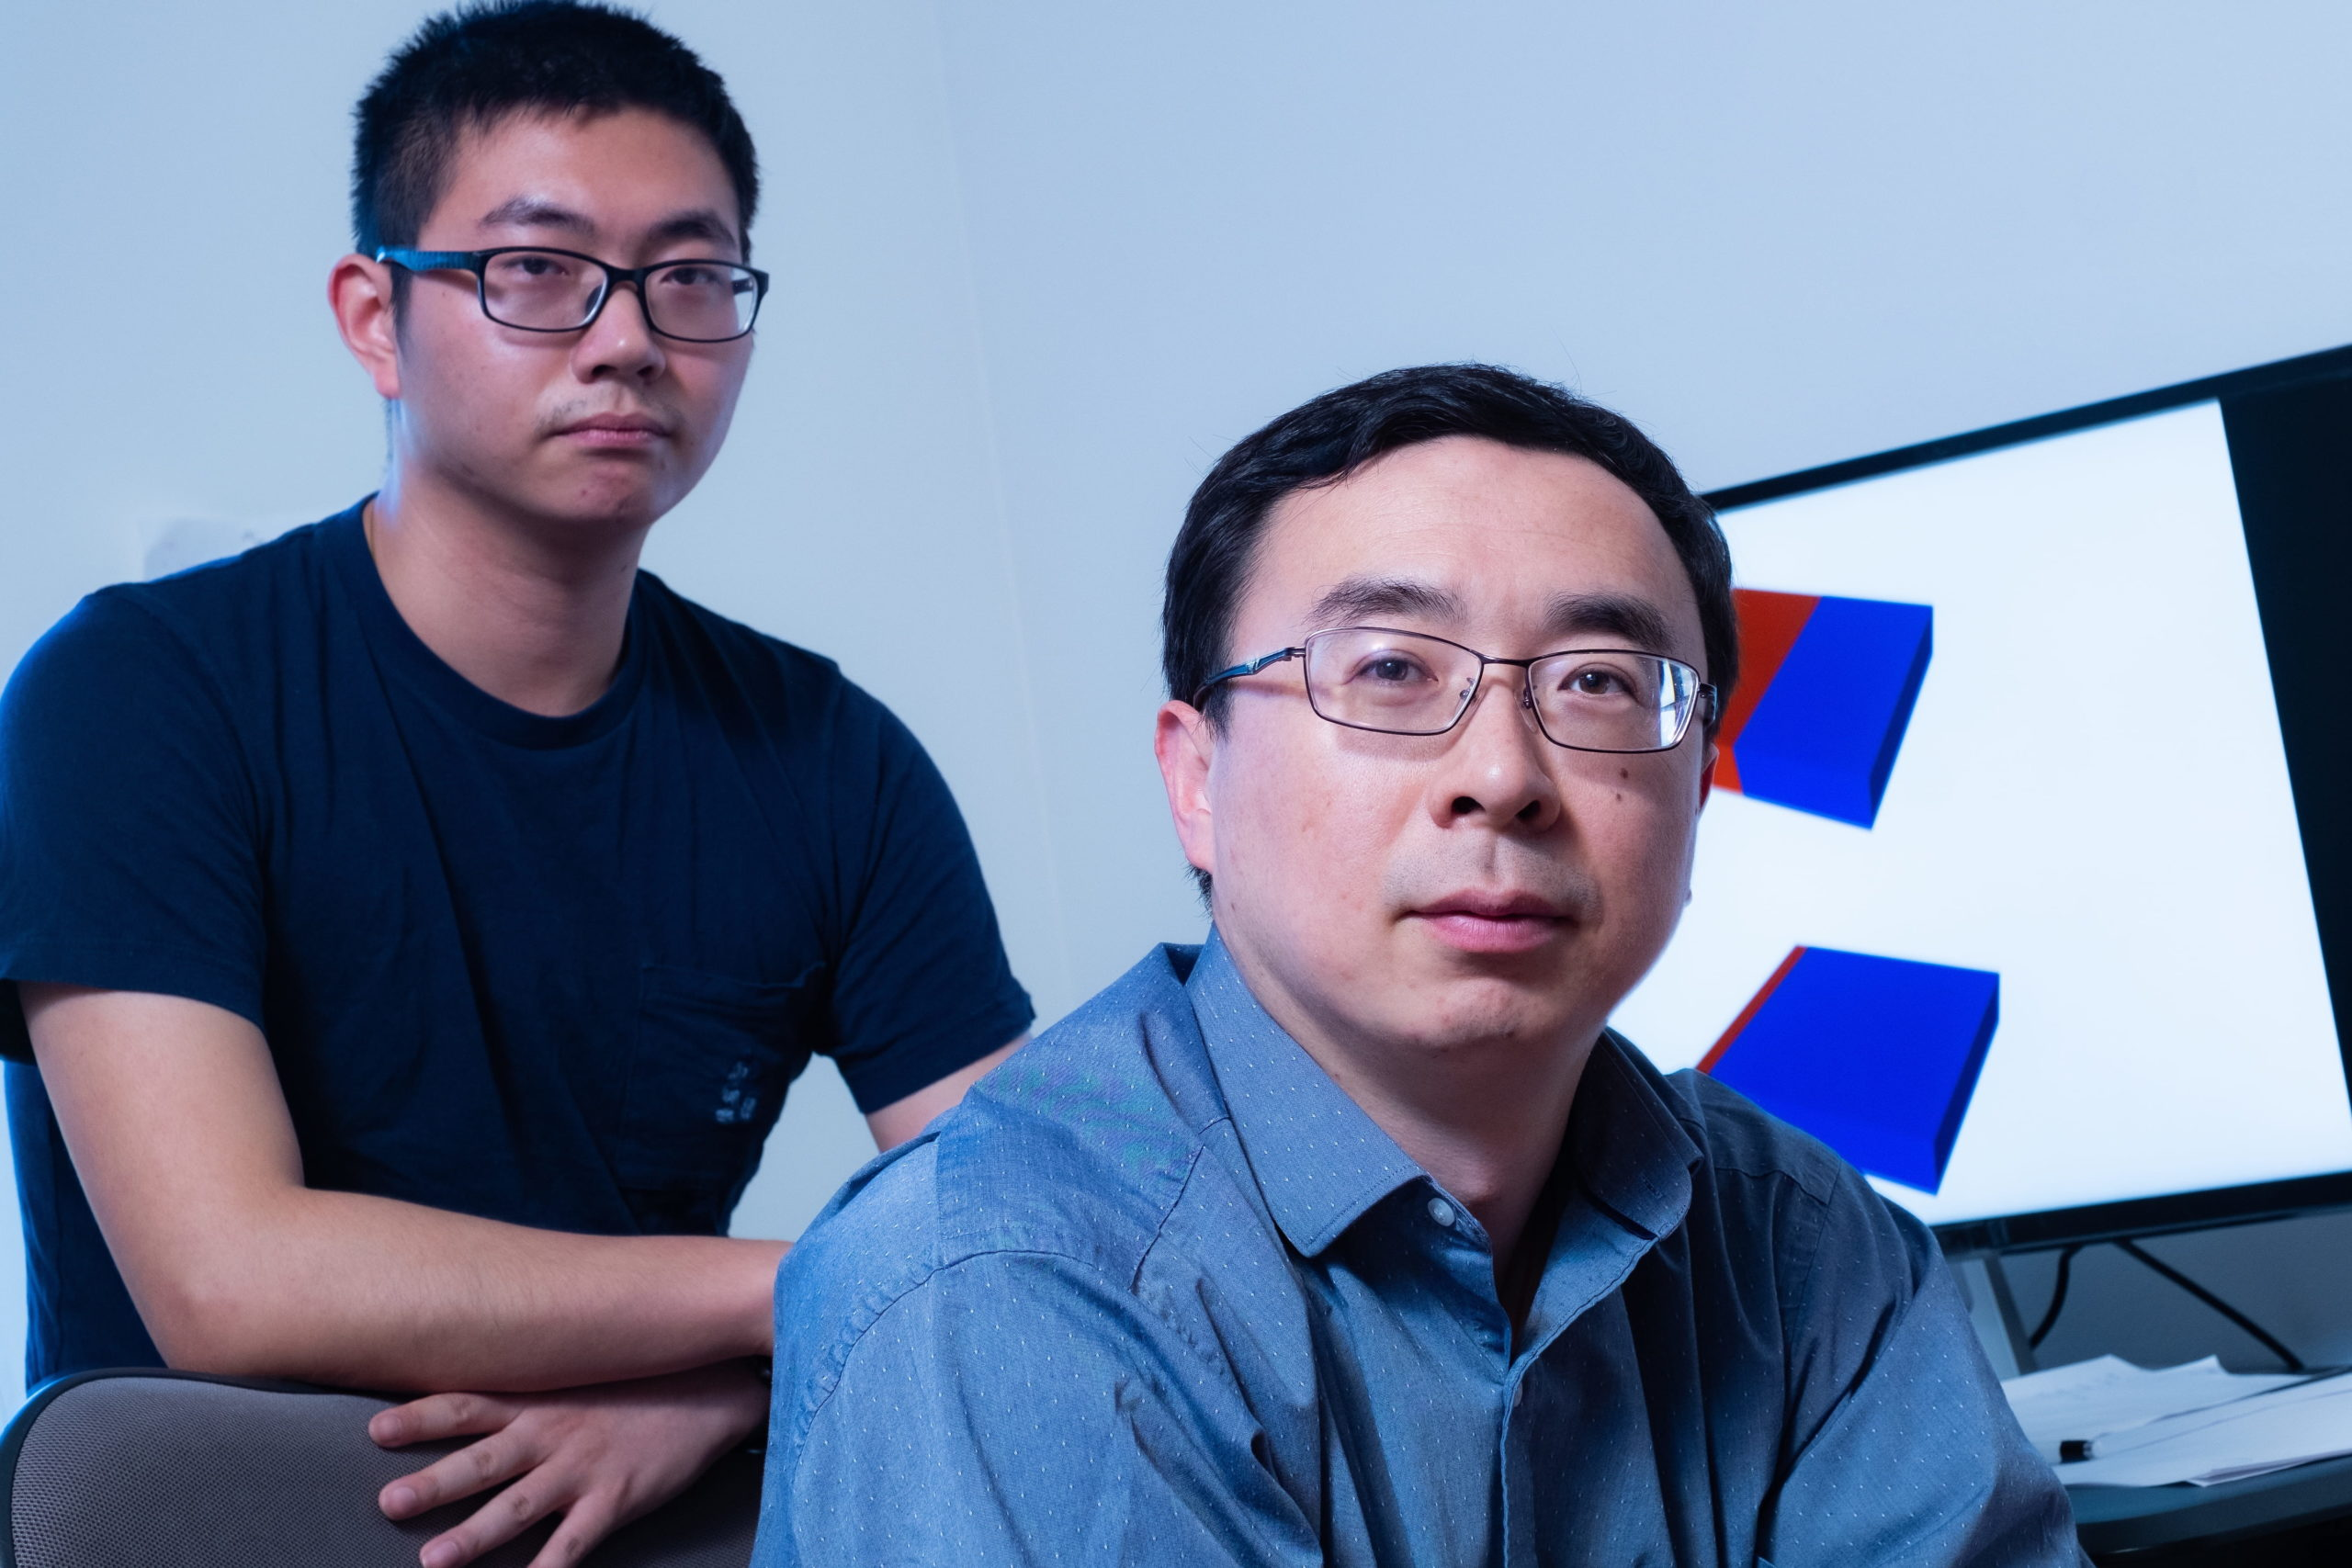 Rice University graduate student Kaiqi Yang, left, and materials scientist Ming Tang modeled how engineering defects in the atomic lattice of an iron phosphate cathode can improve the performance of lithium ion batteries. (Credit: Jeff Fitlow/Rice University)